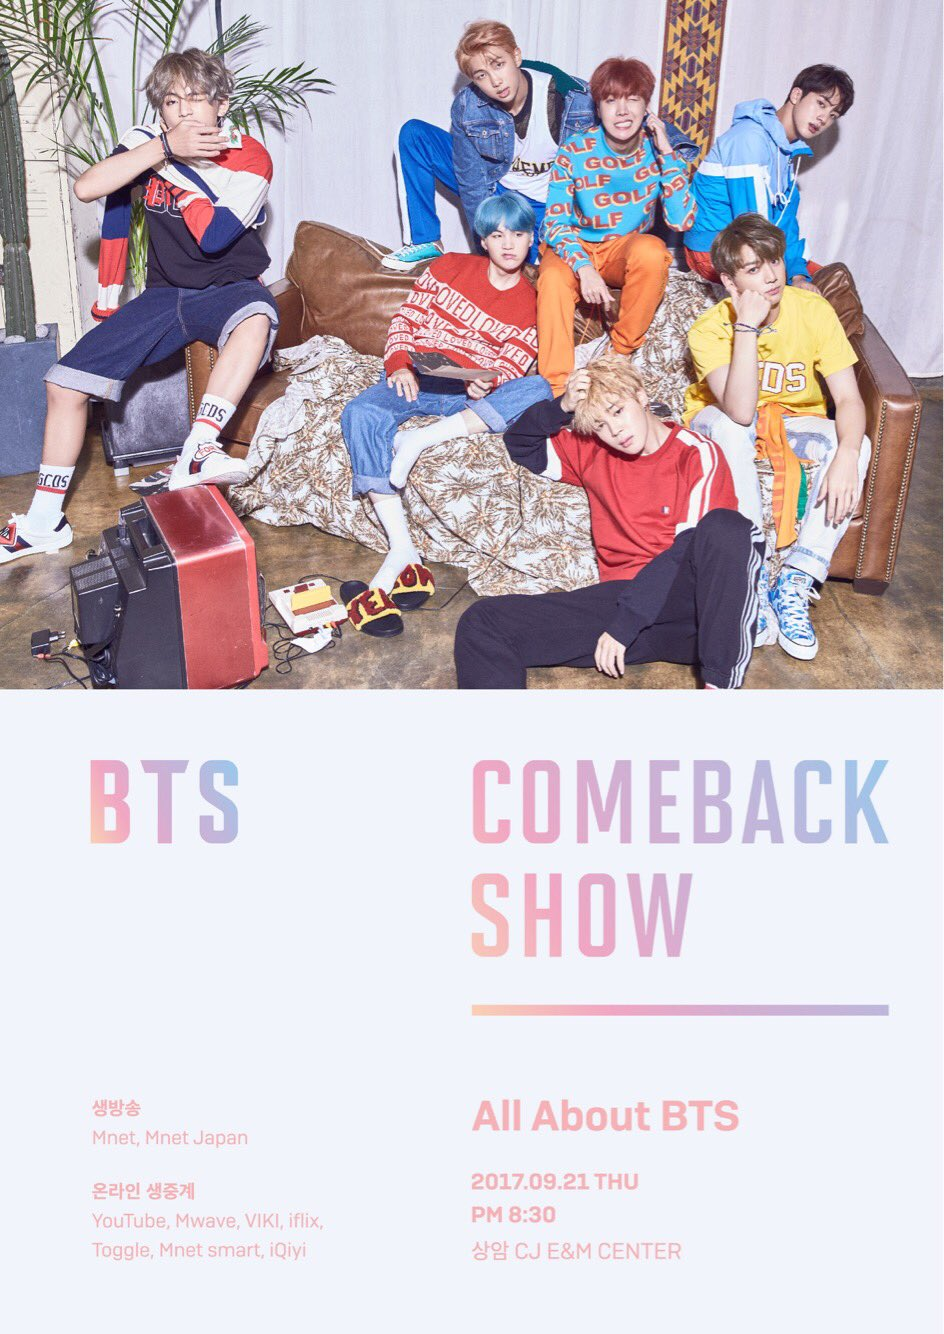 #BTS Comback Show will go LIVE tomorrow @4:30AM(PST)/7:30AM(EST). Are you ready ARMYs? Stay tuned! https://t.co/XgoLQ8pJsJ